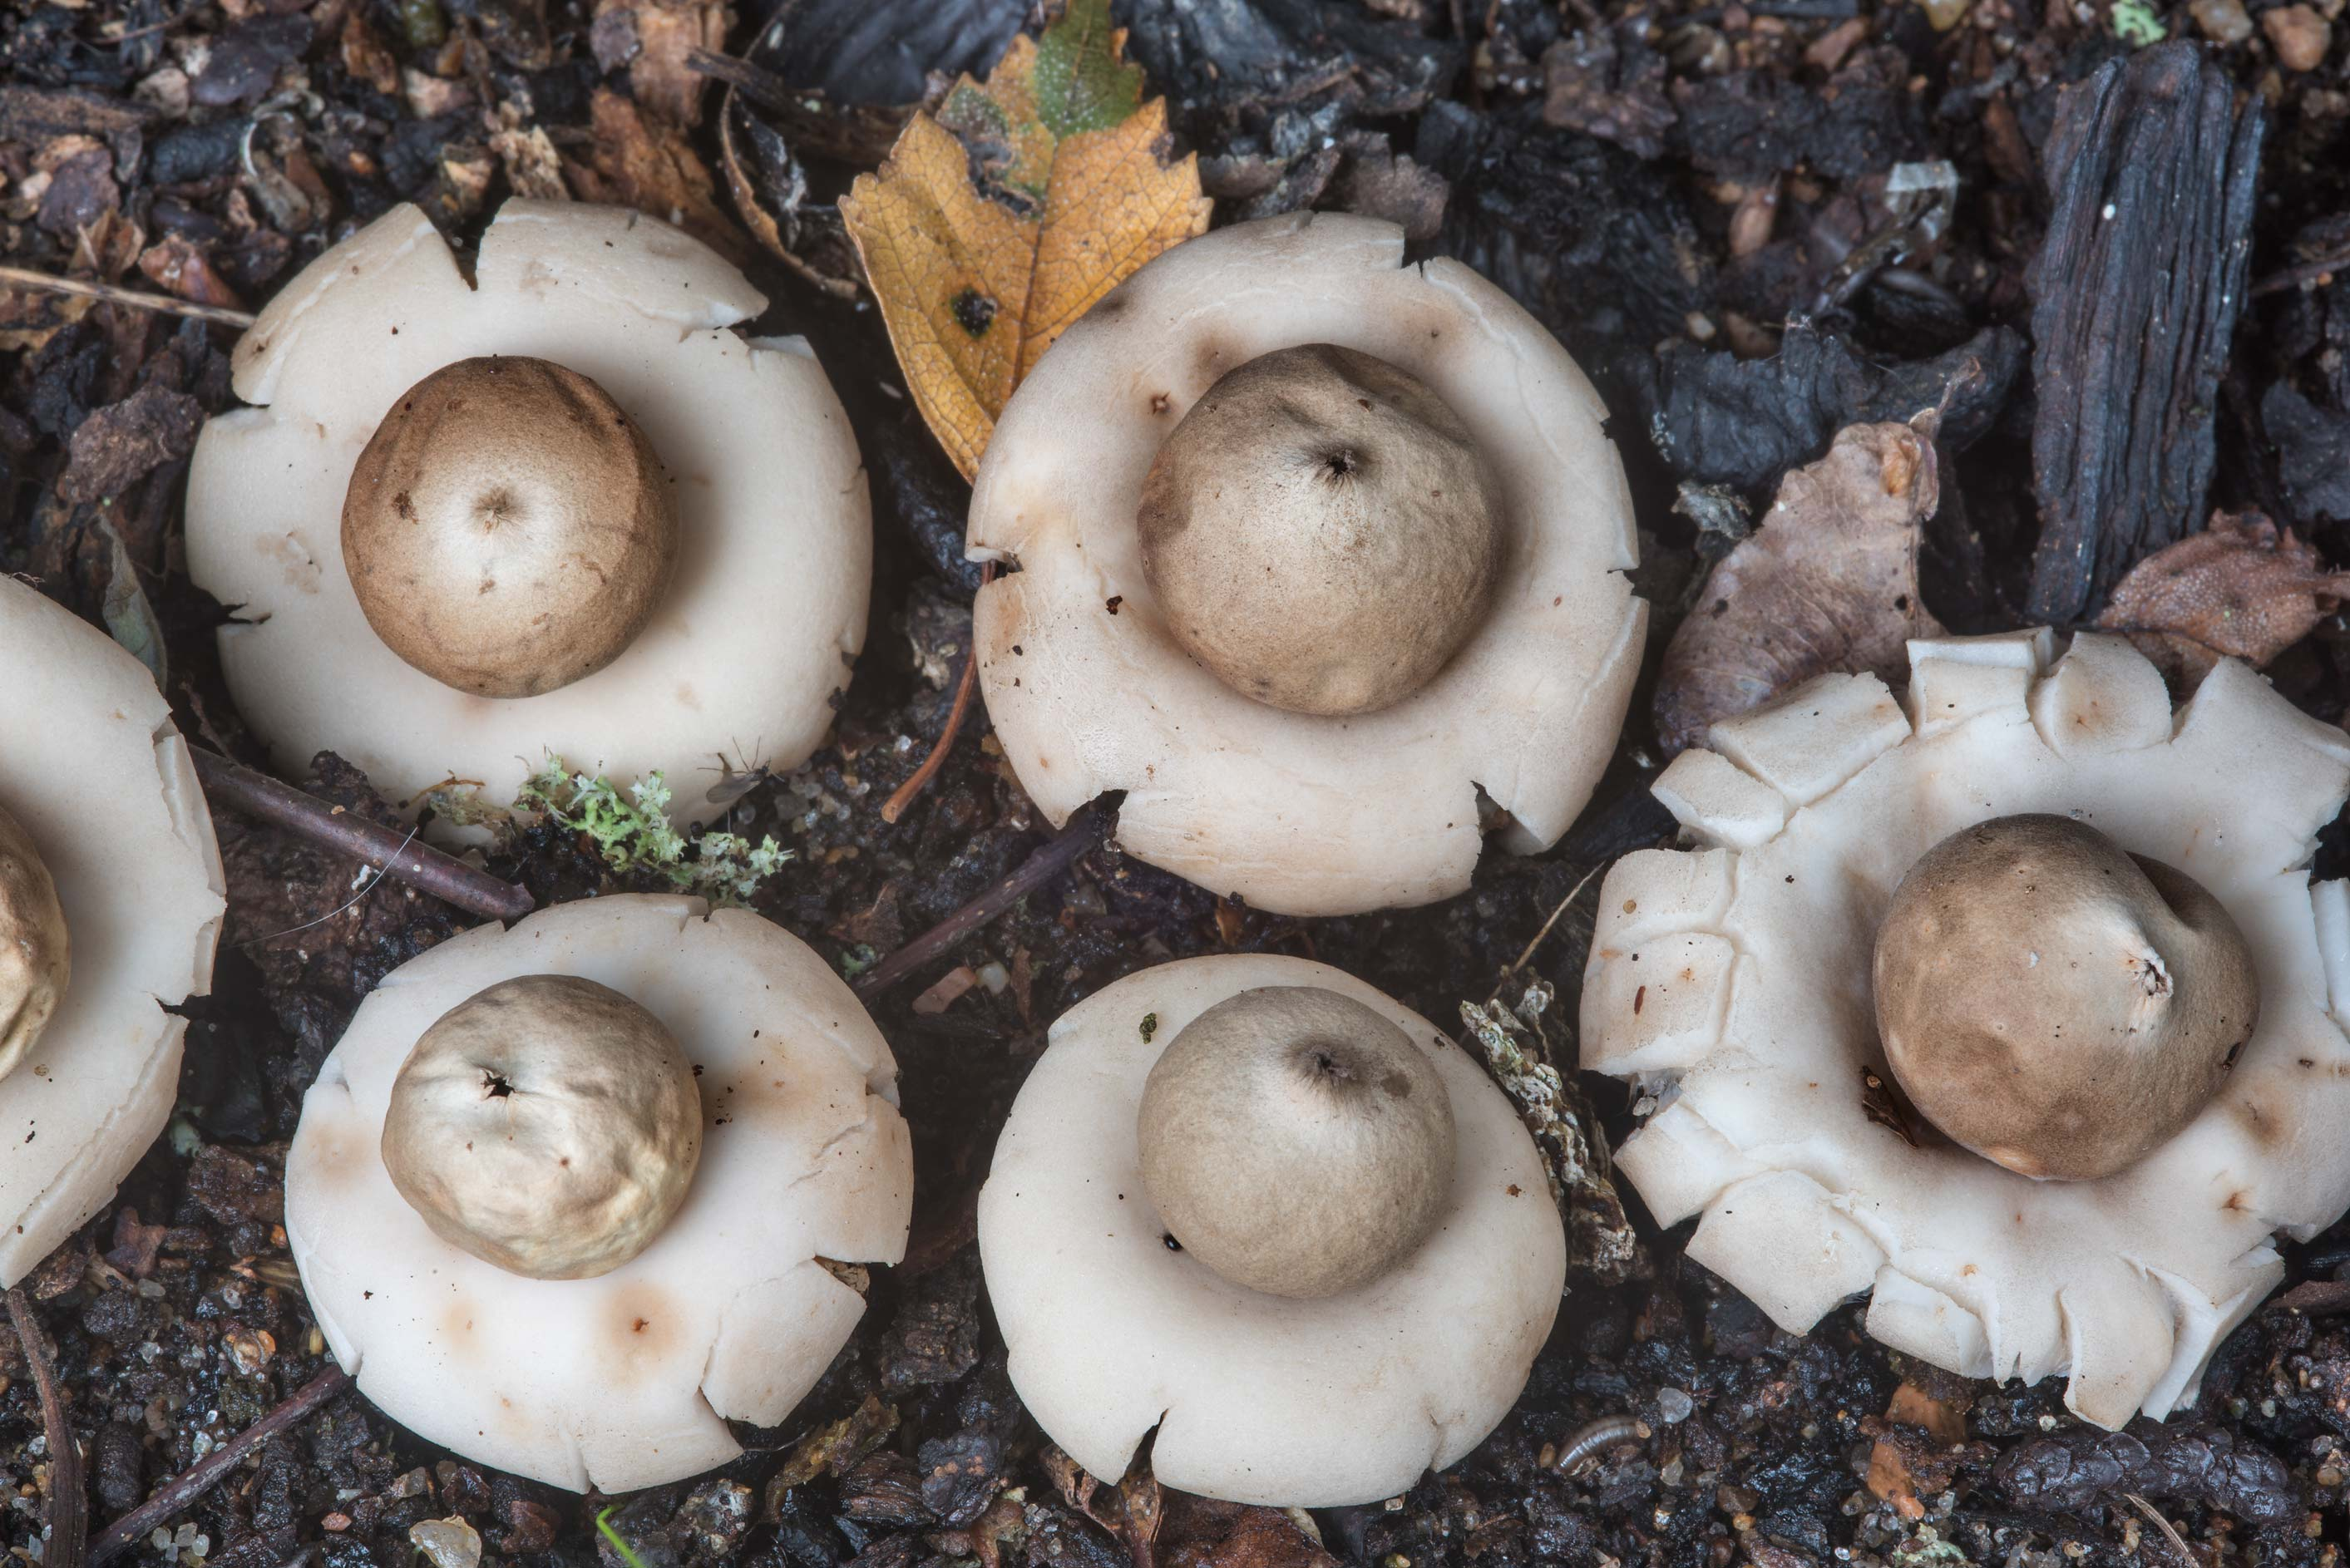 Sessile earthstar mushrooms (Geastrum fimbriatum...Nos, west from St.Petersburg. Russia